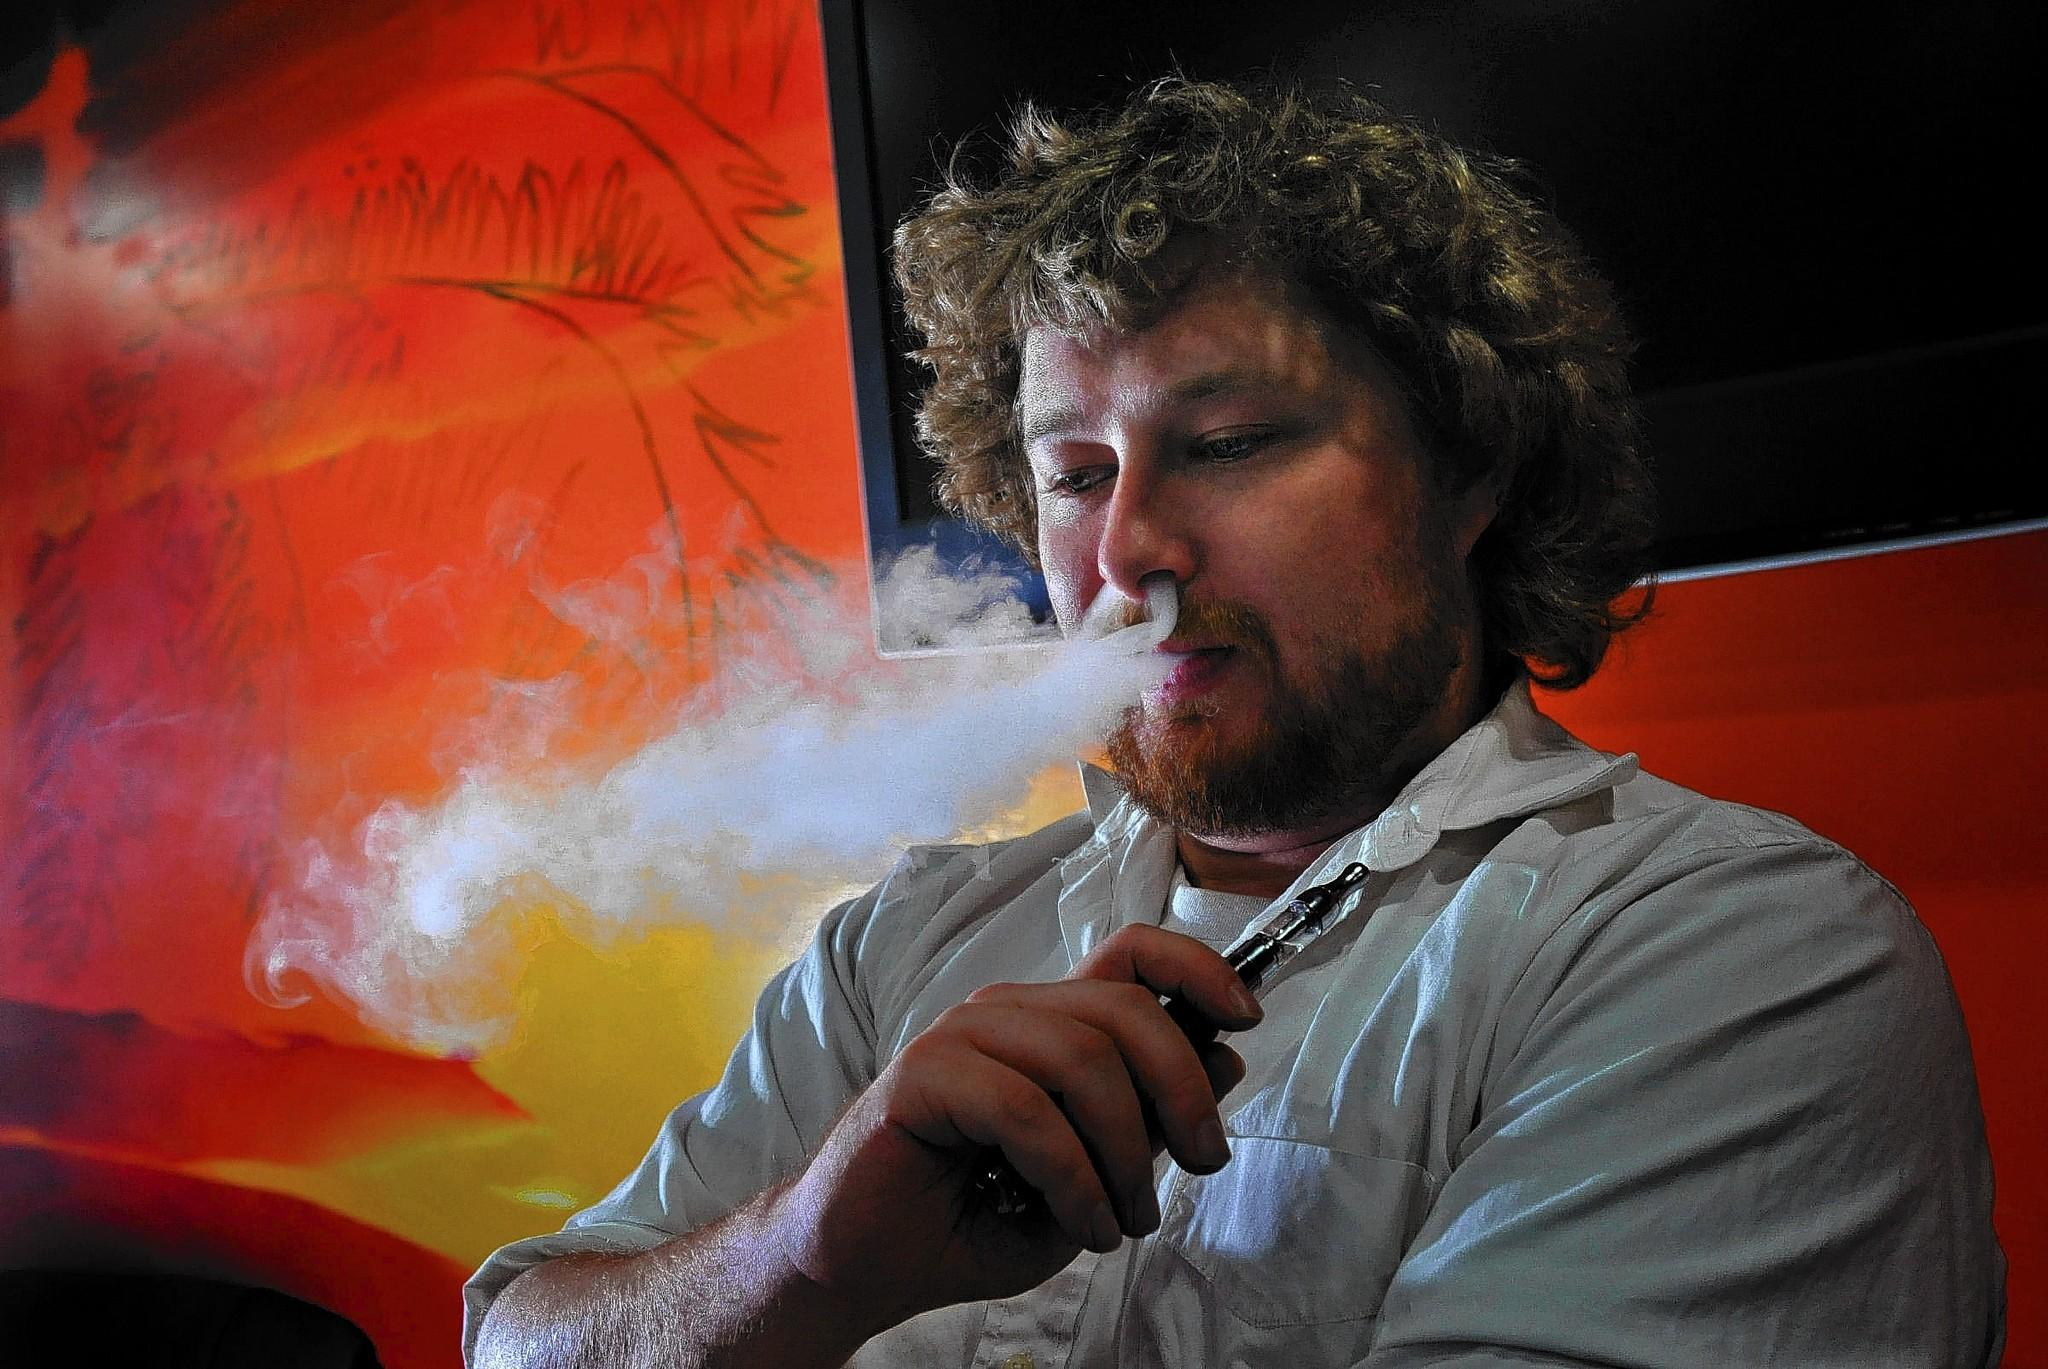 Electronic Cigarettes might save multiplied millions of lives